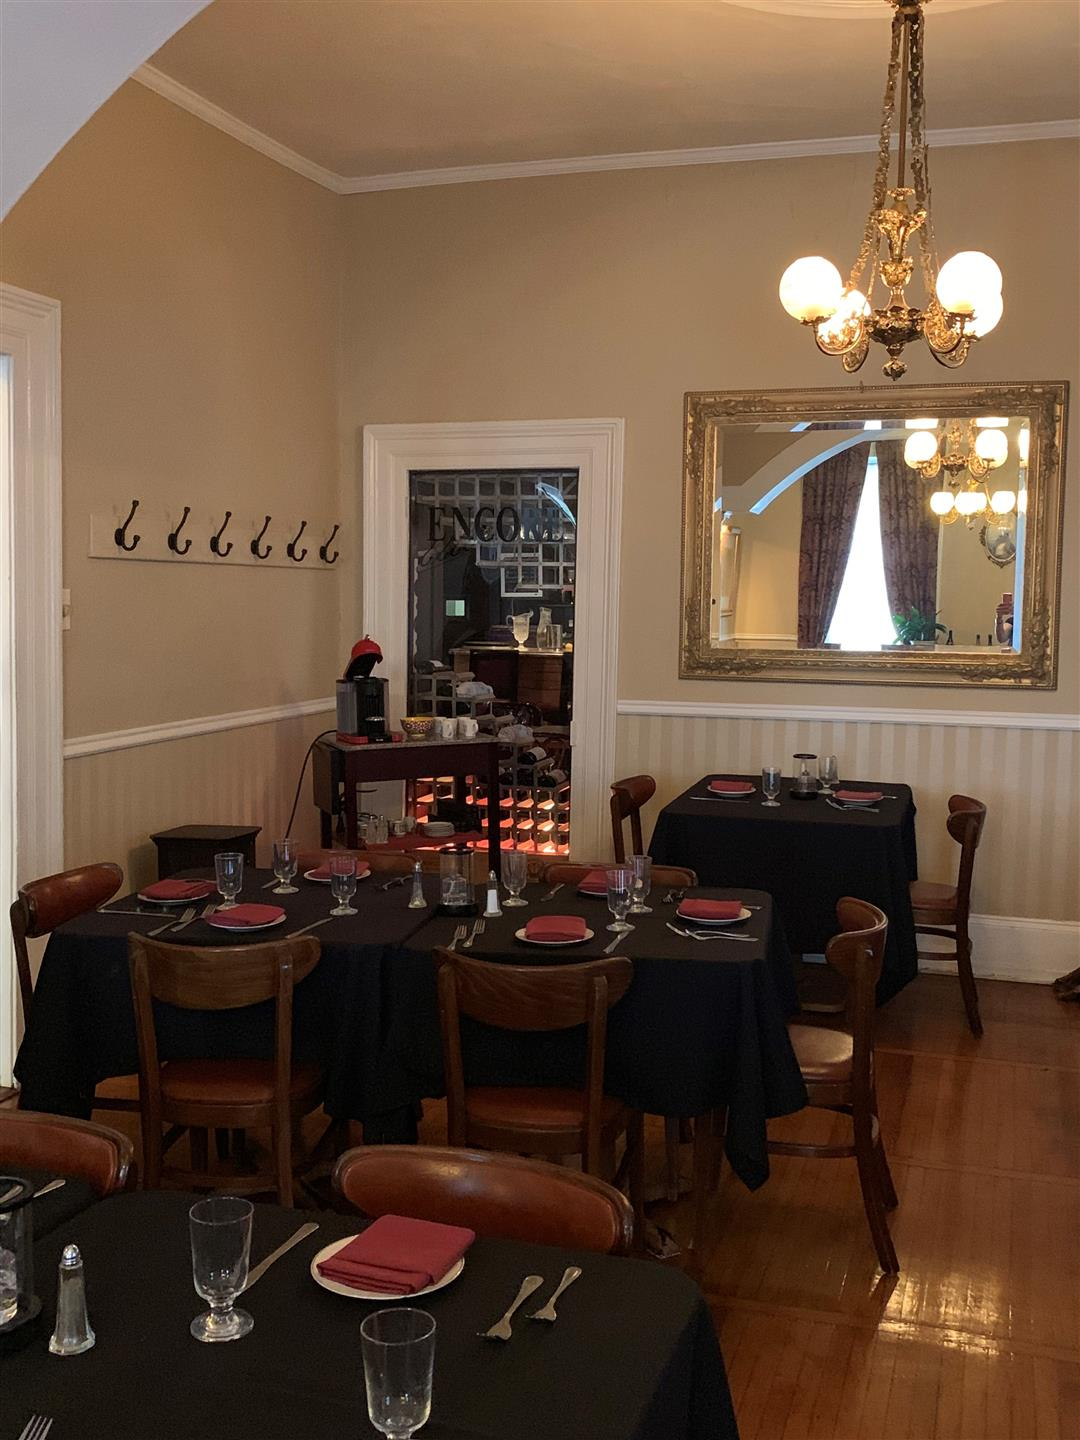 dining room filled with set tables and chairs with coat hooks hanging, mirror on the wall and Chandeliers hanging